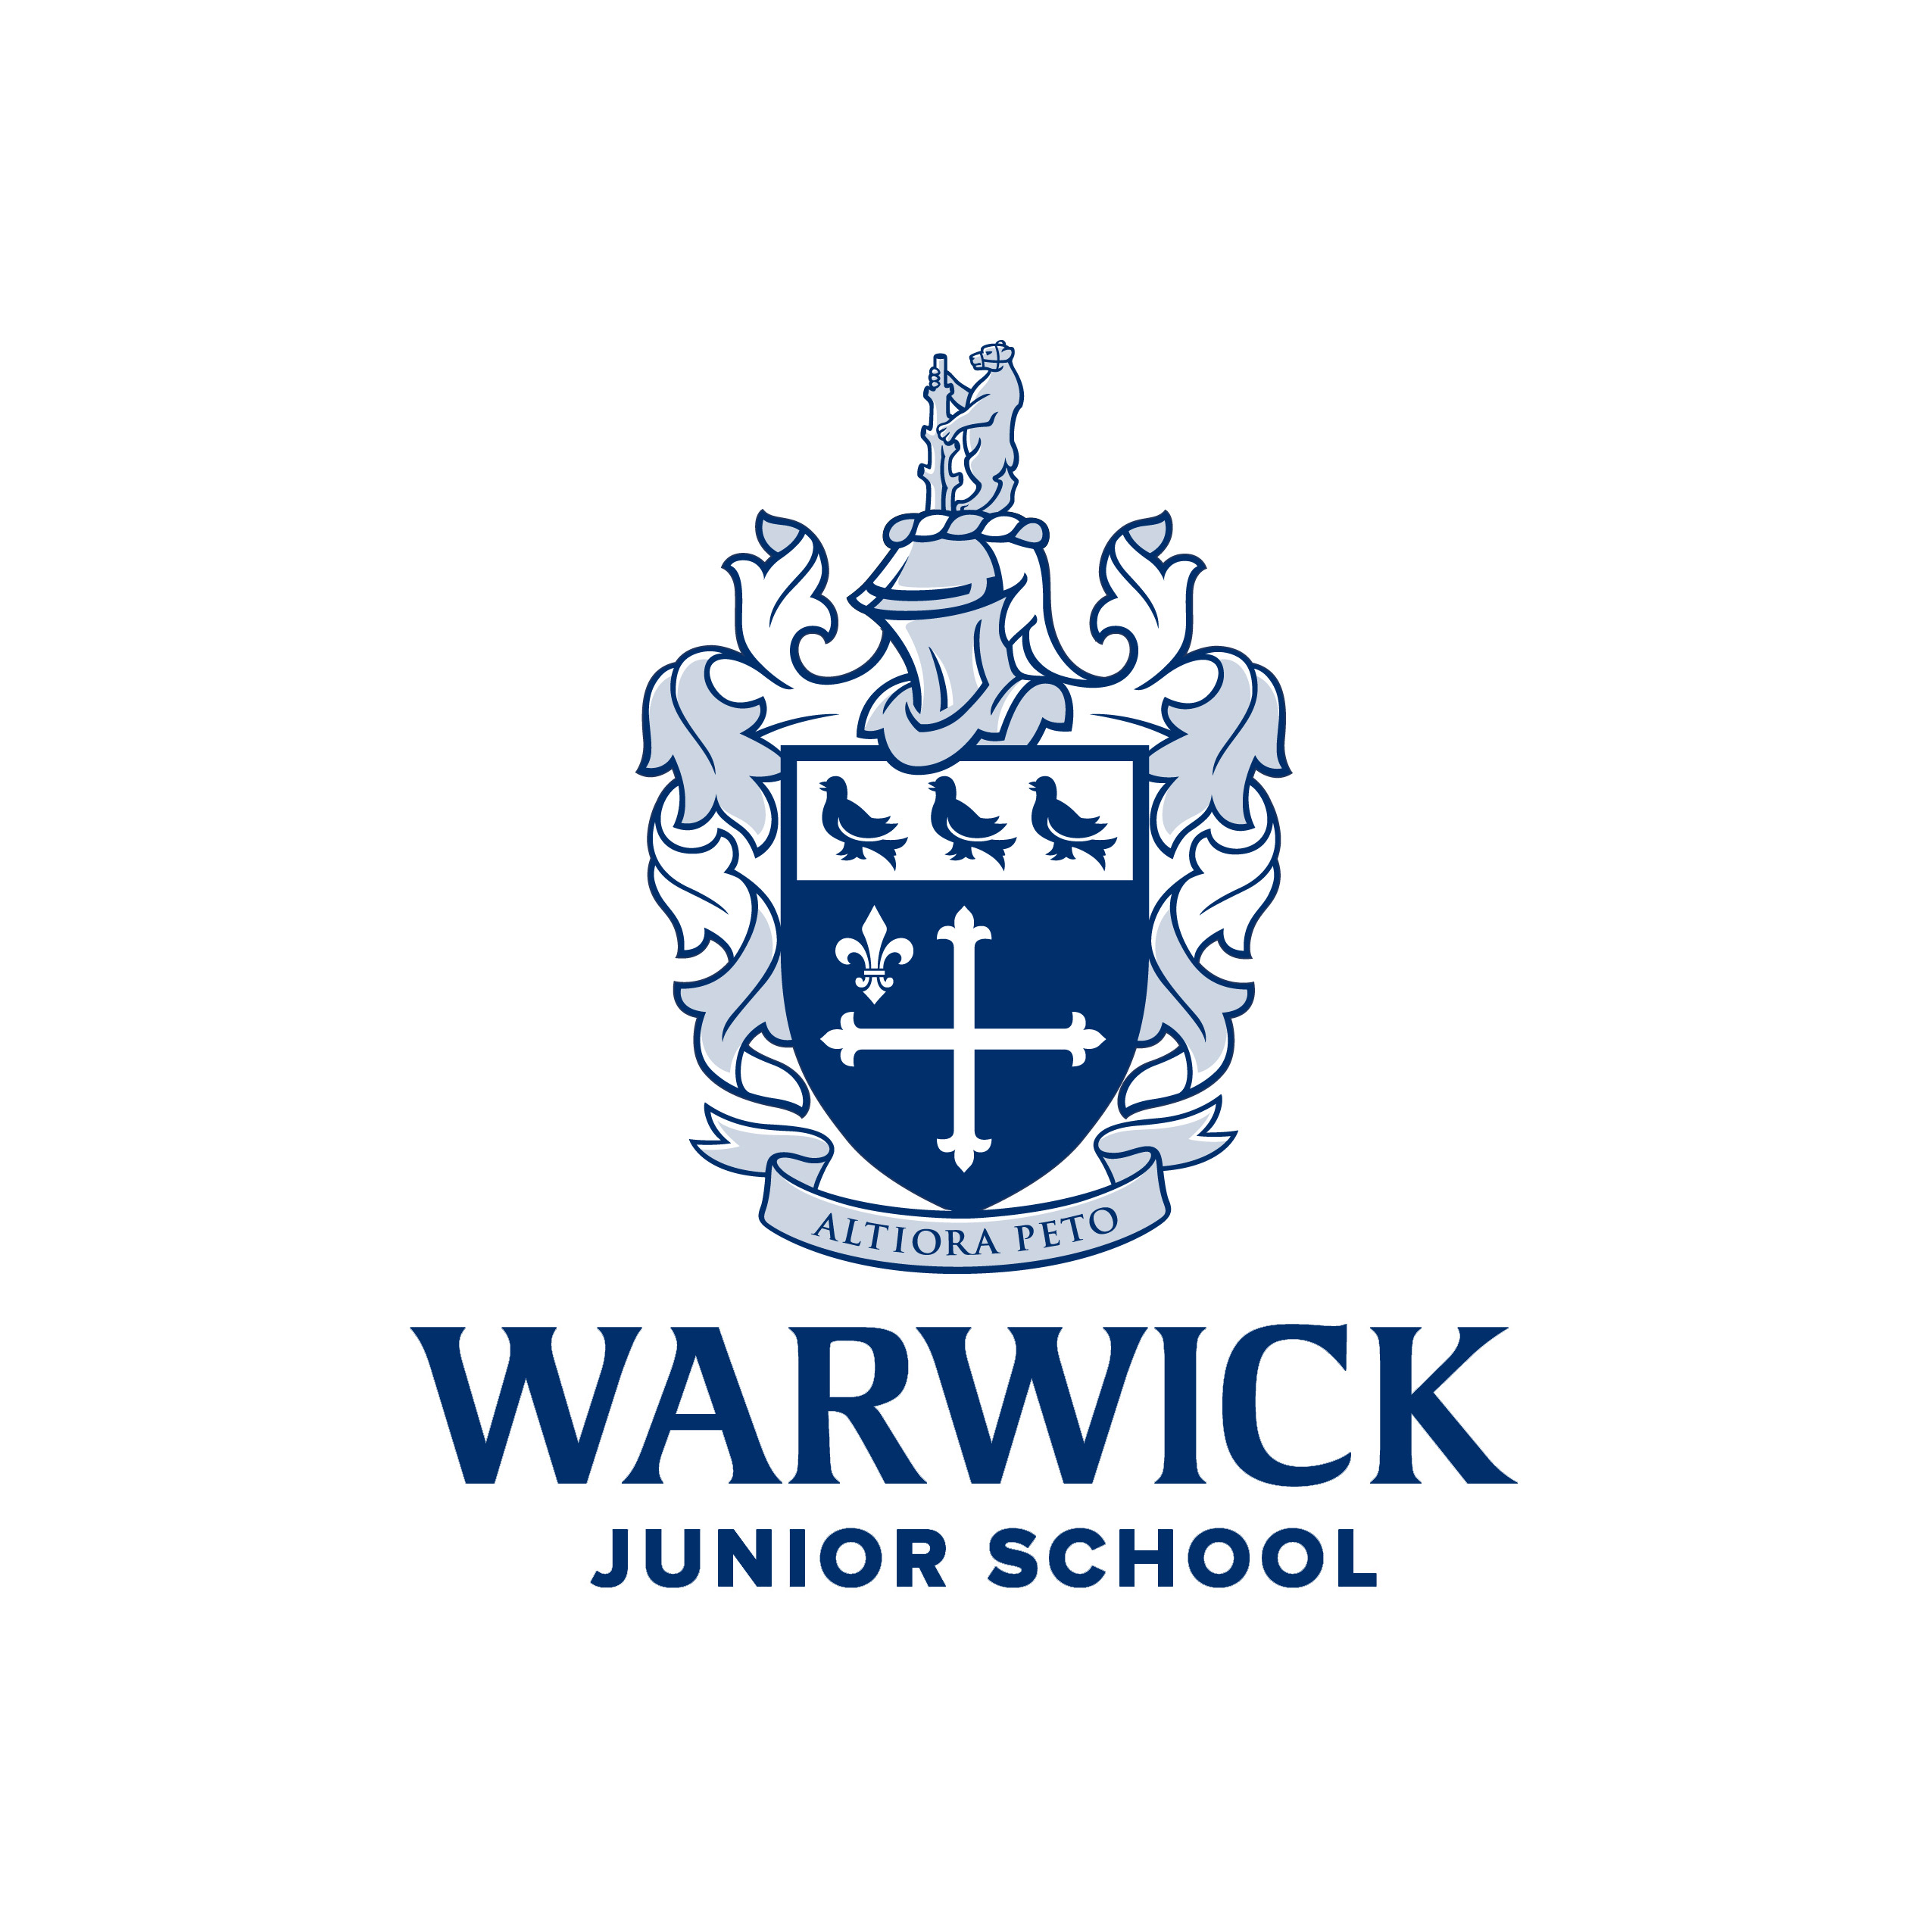 Warwick Junior School